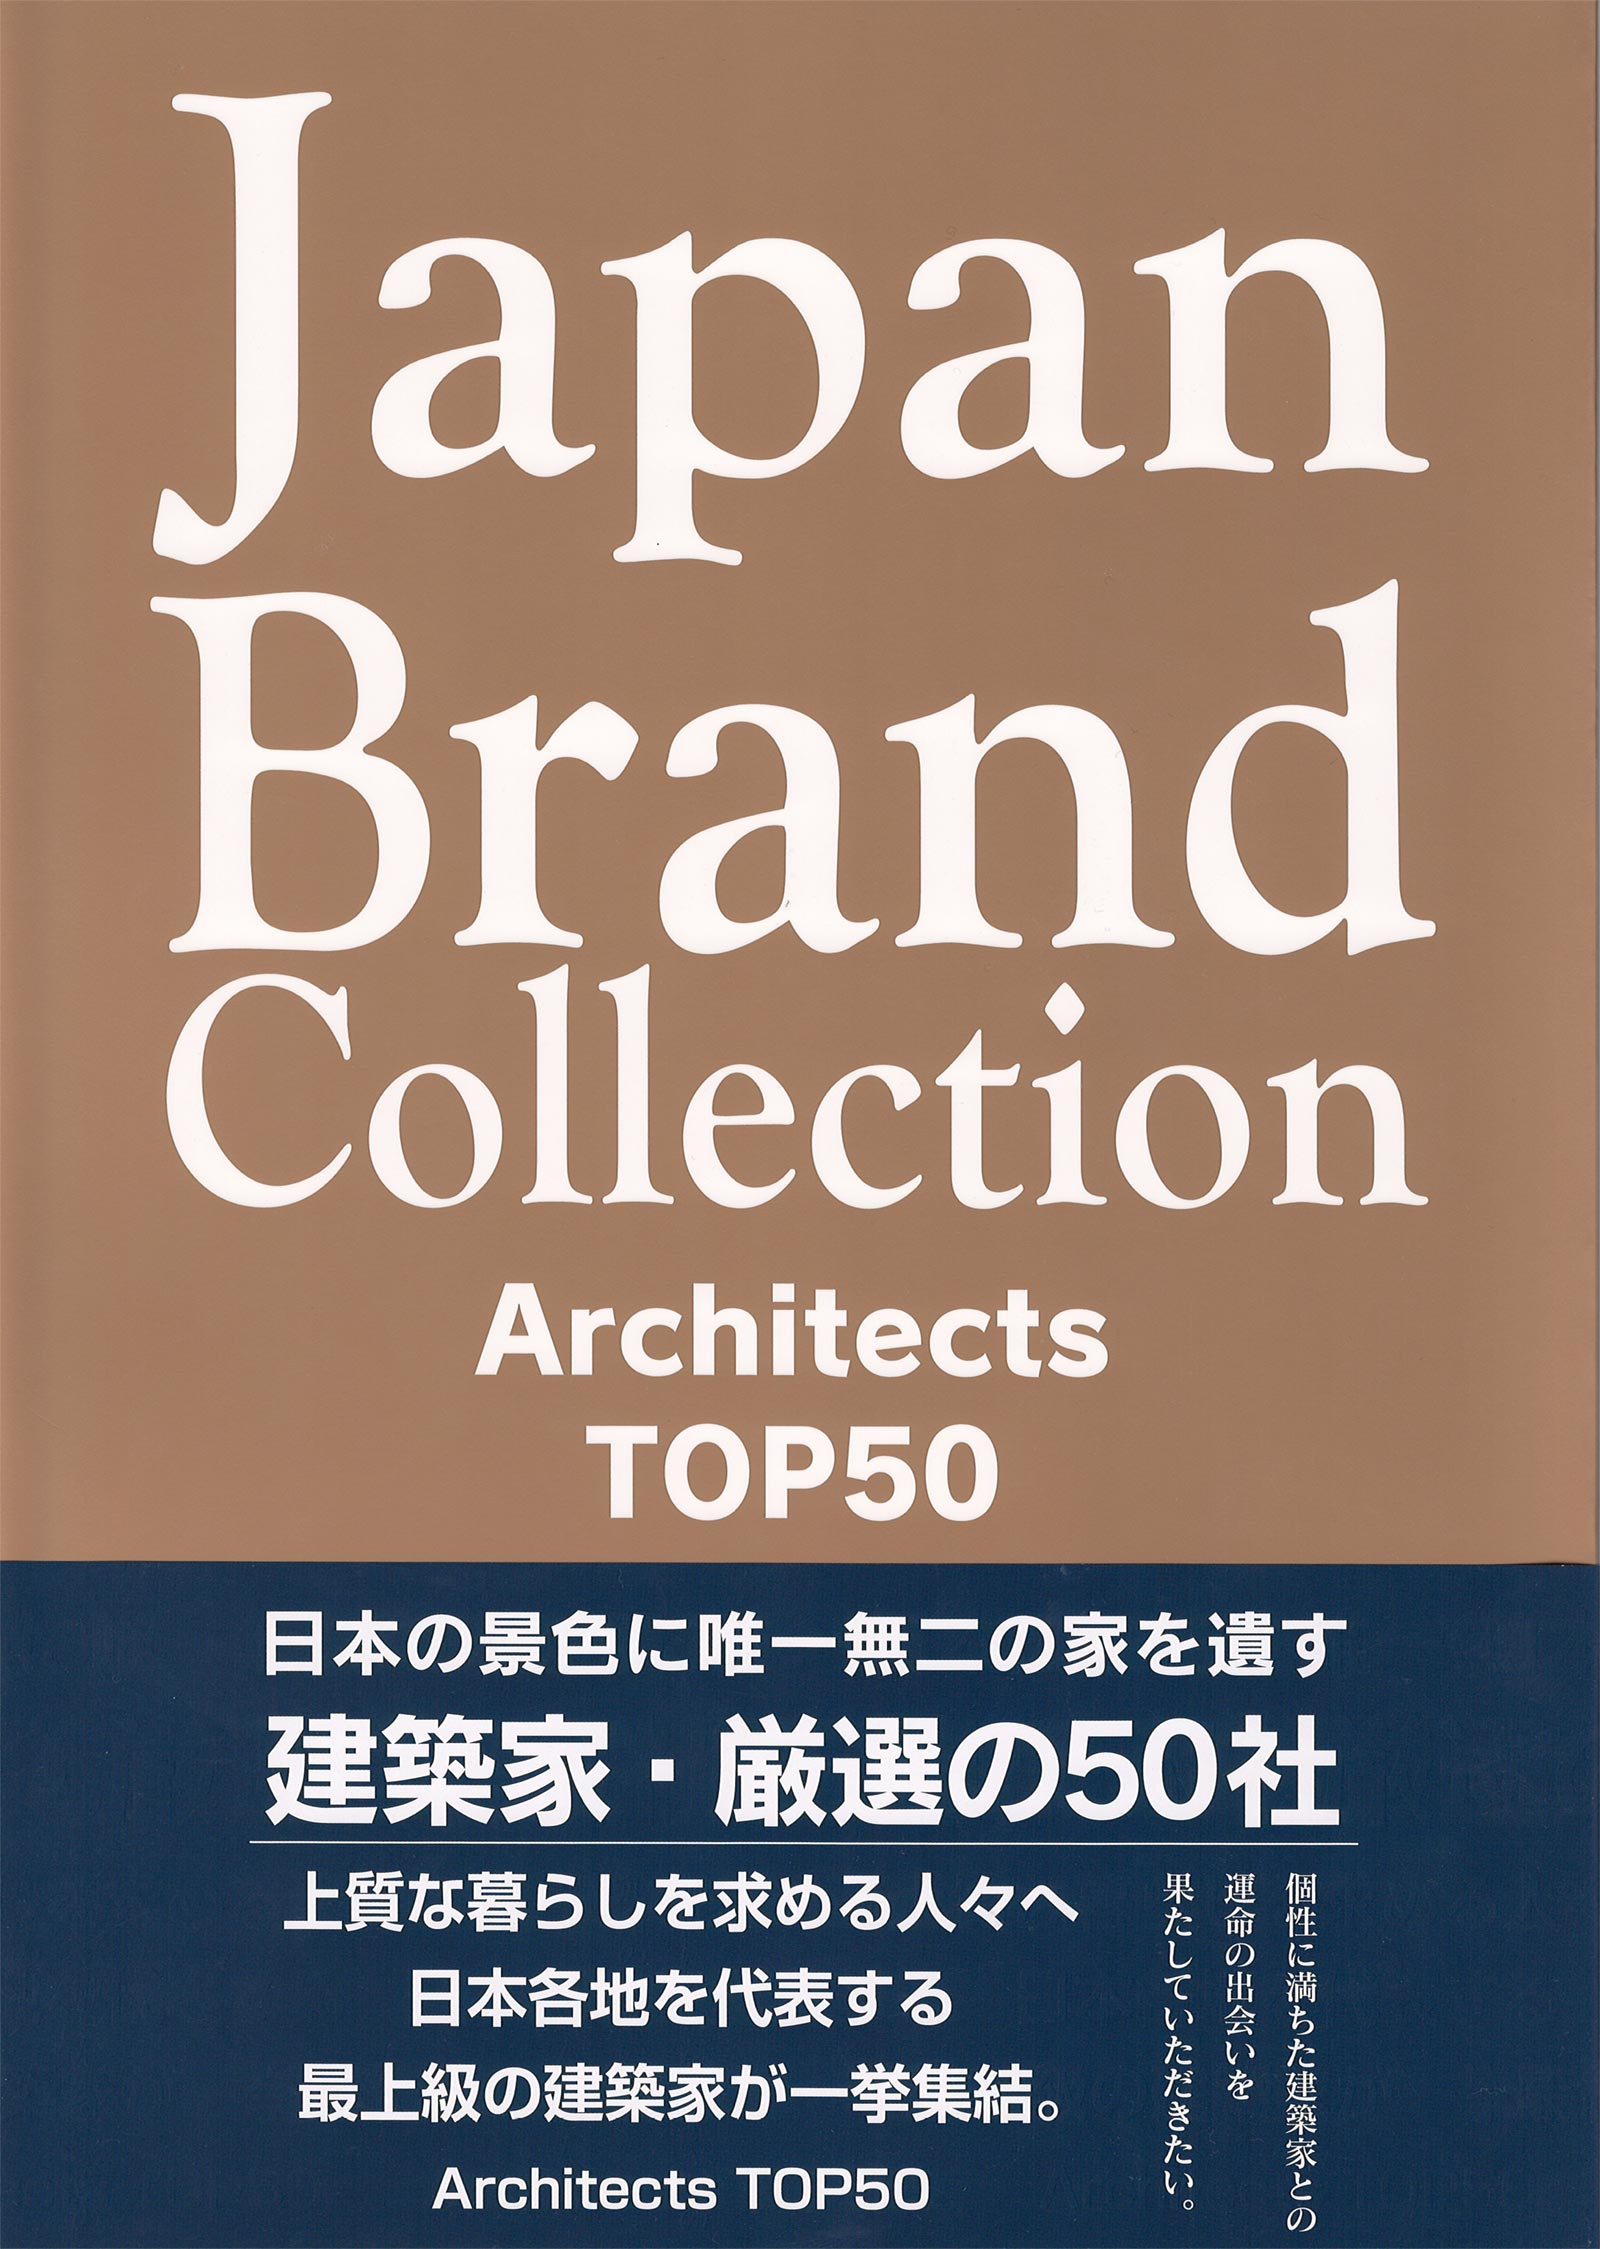 Japan Brand Collection 兵庫県版